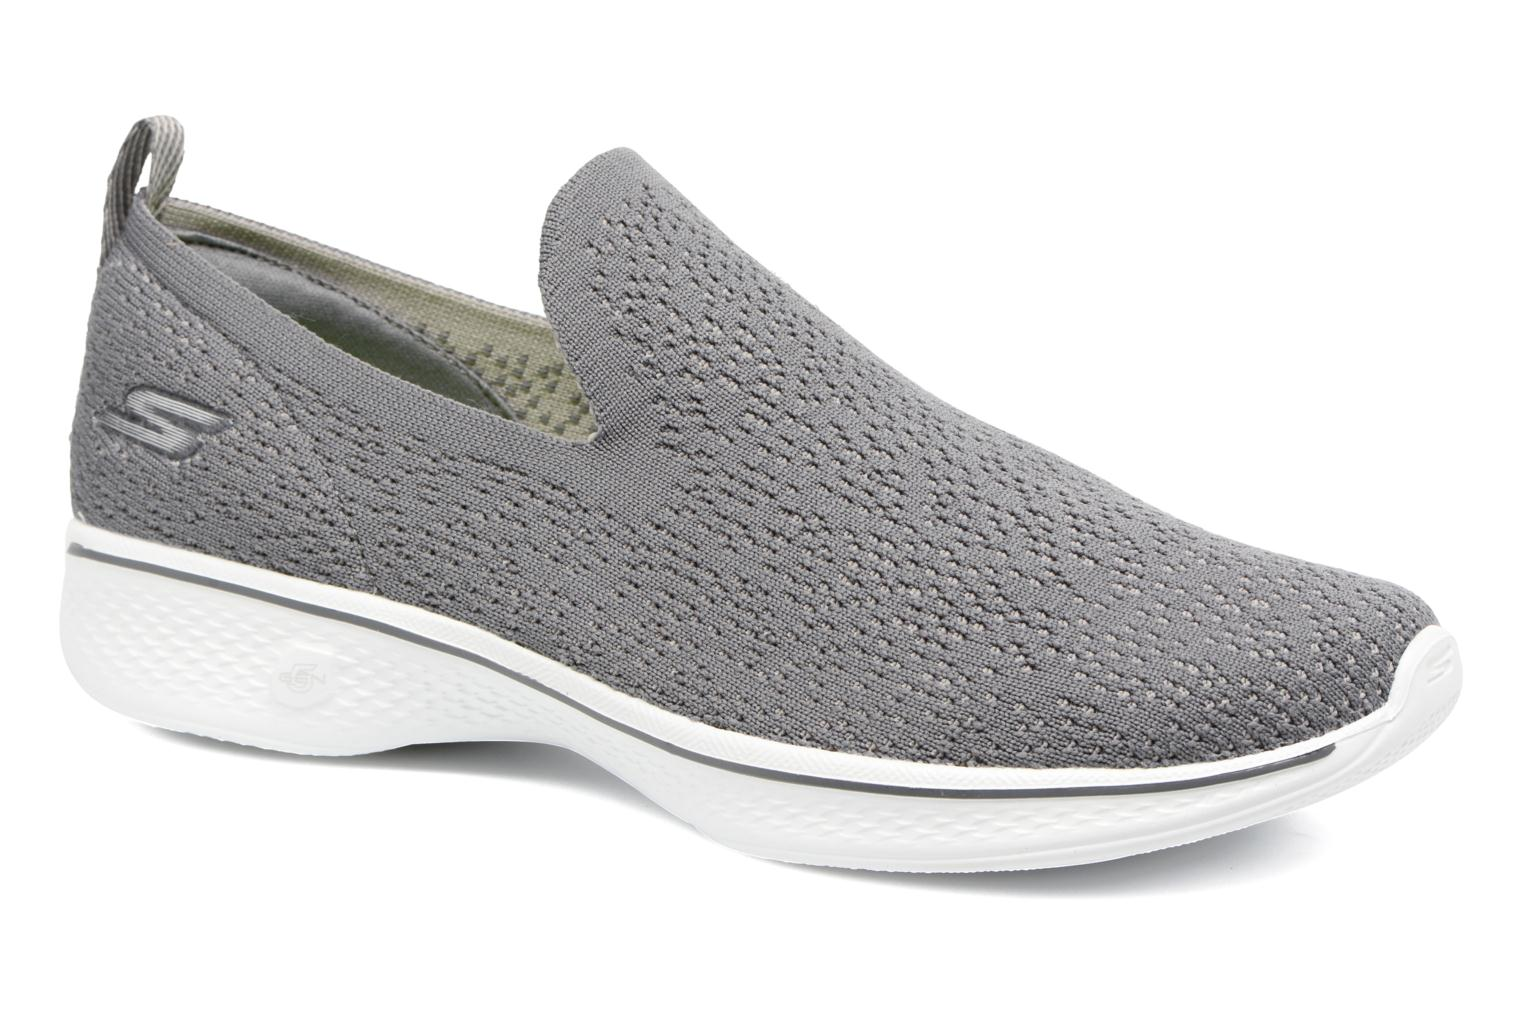 Marques Chaussure femme Skechers femme Go walk 4 gifted CHAR